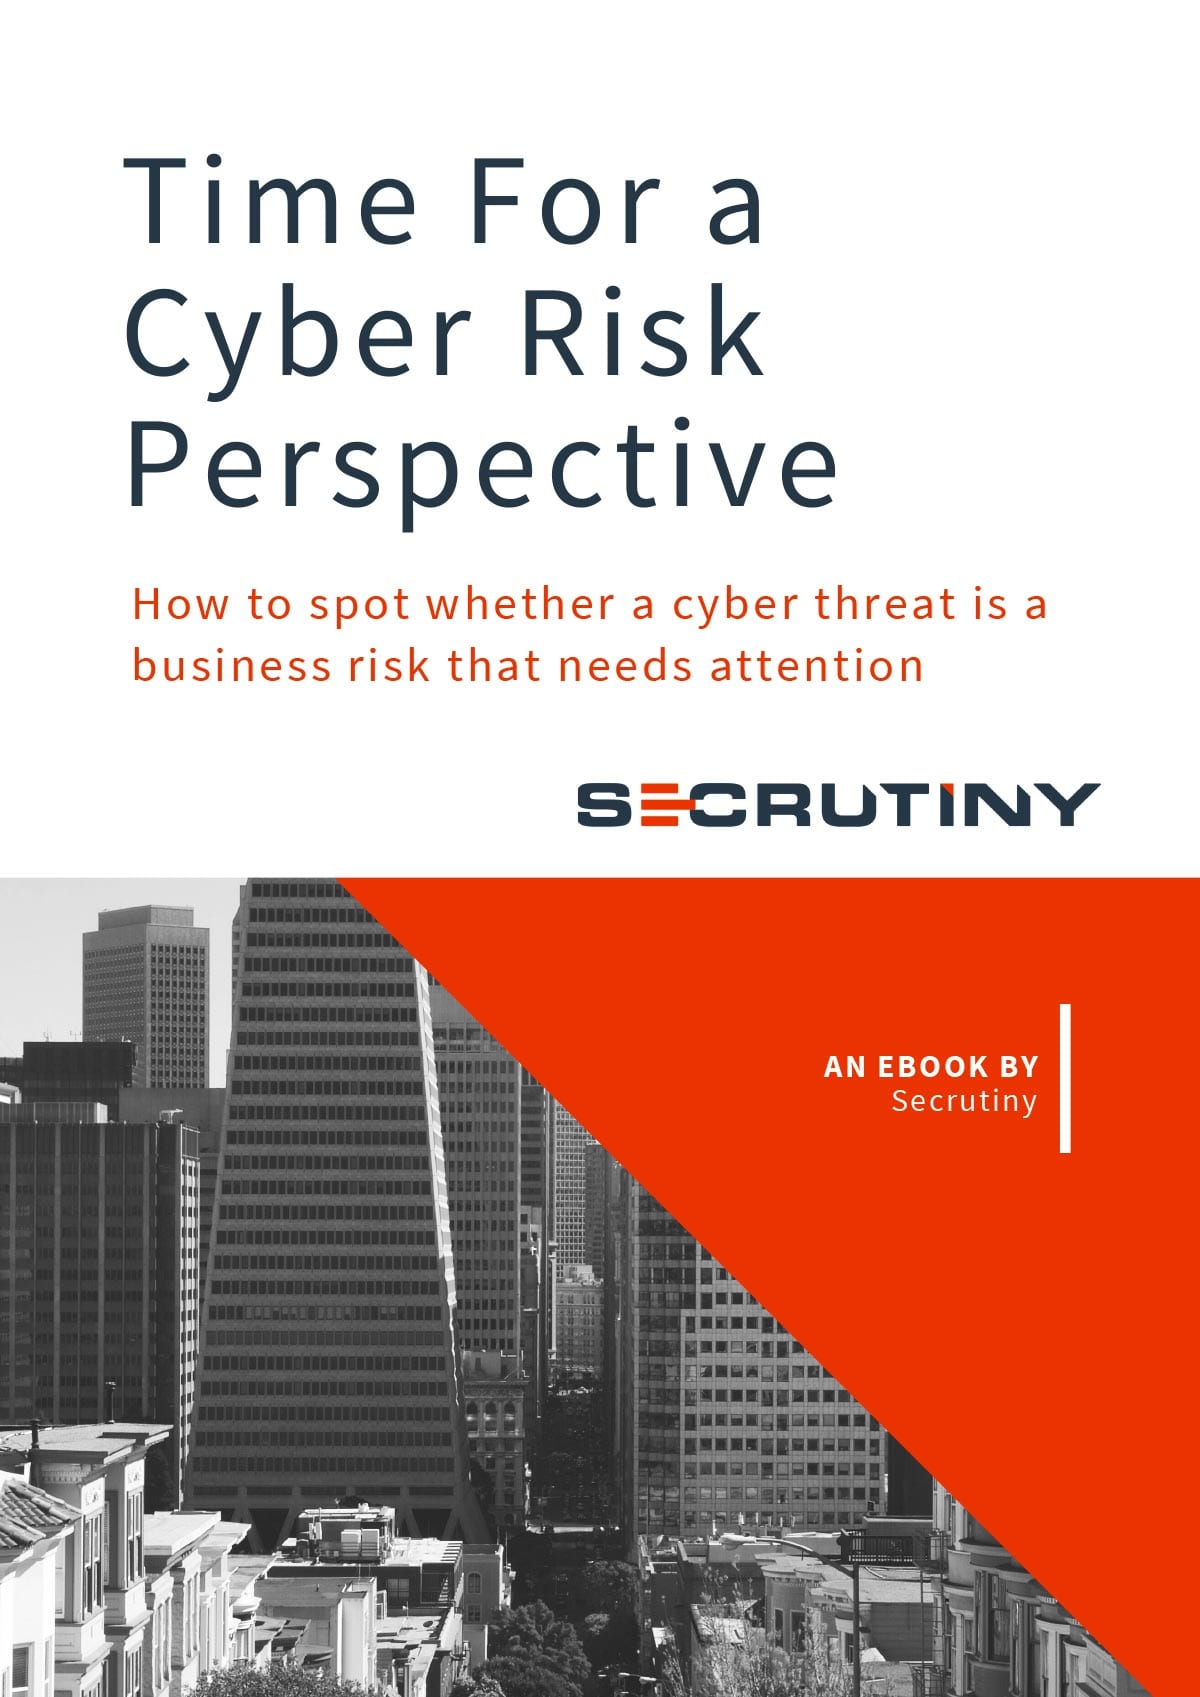 Secrutiny Cybersecurity - Whitepaper - Time for a Cyber Risk Perspective